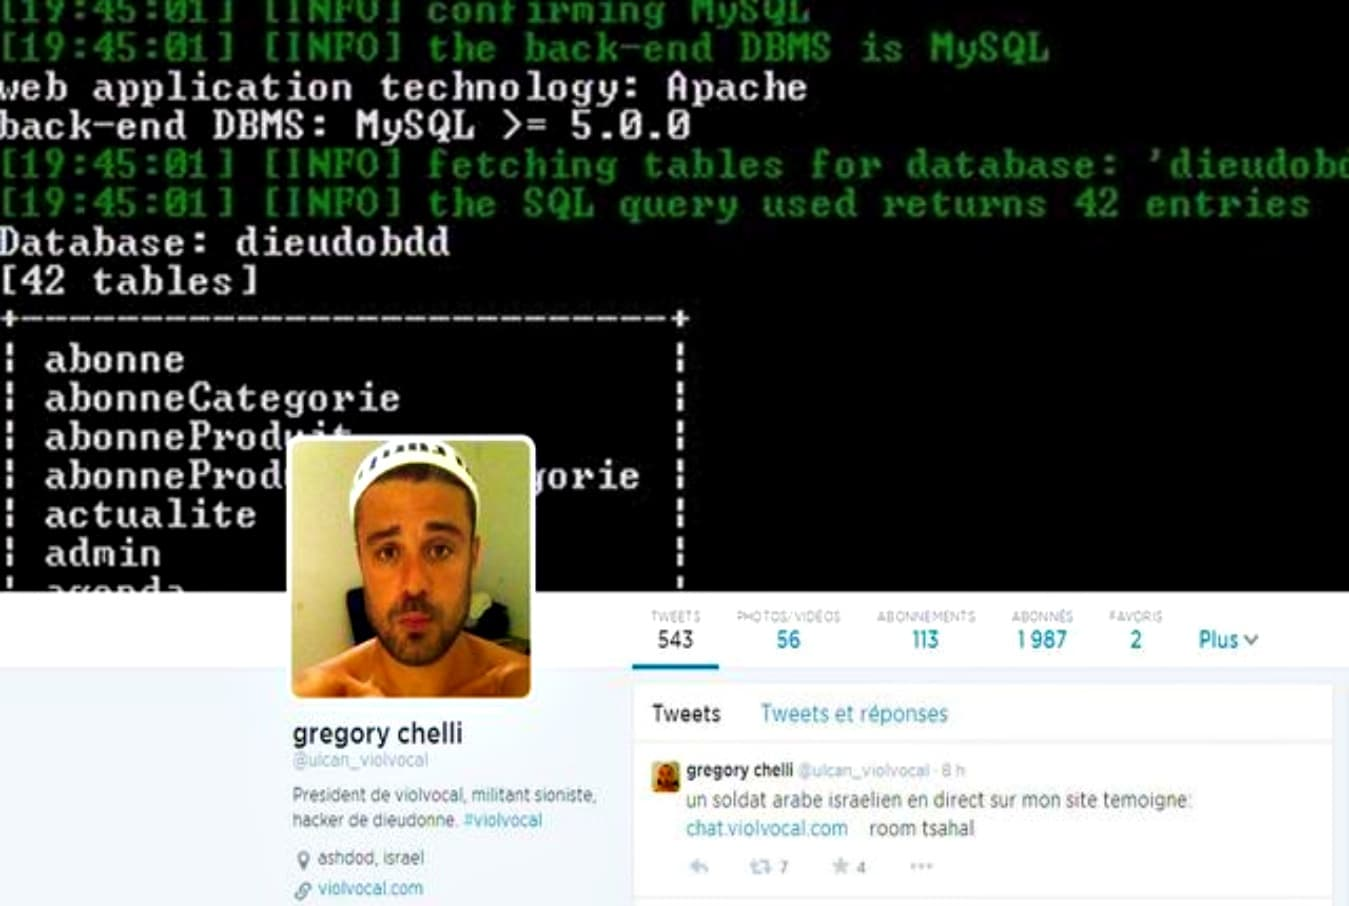 Death Linked To Prank France Seeks Extradition Of Hacker From Israel